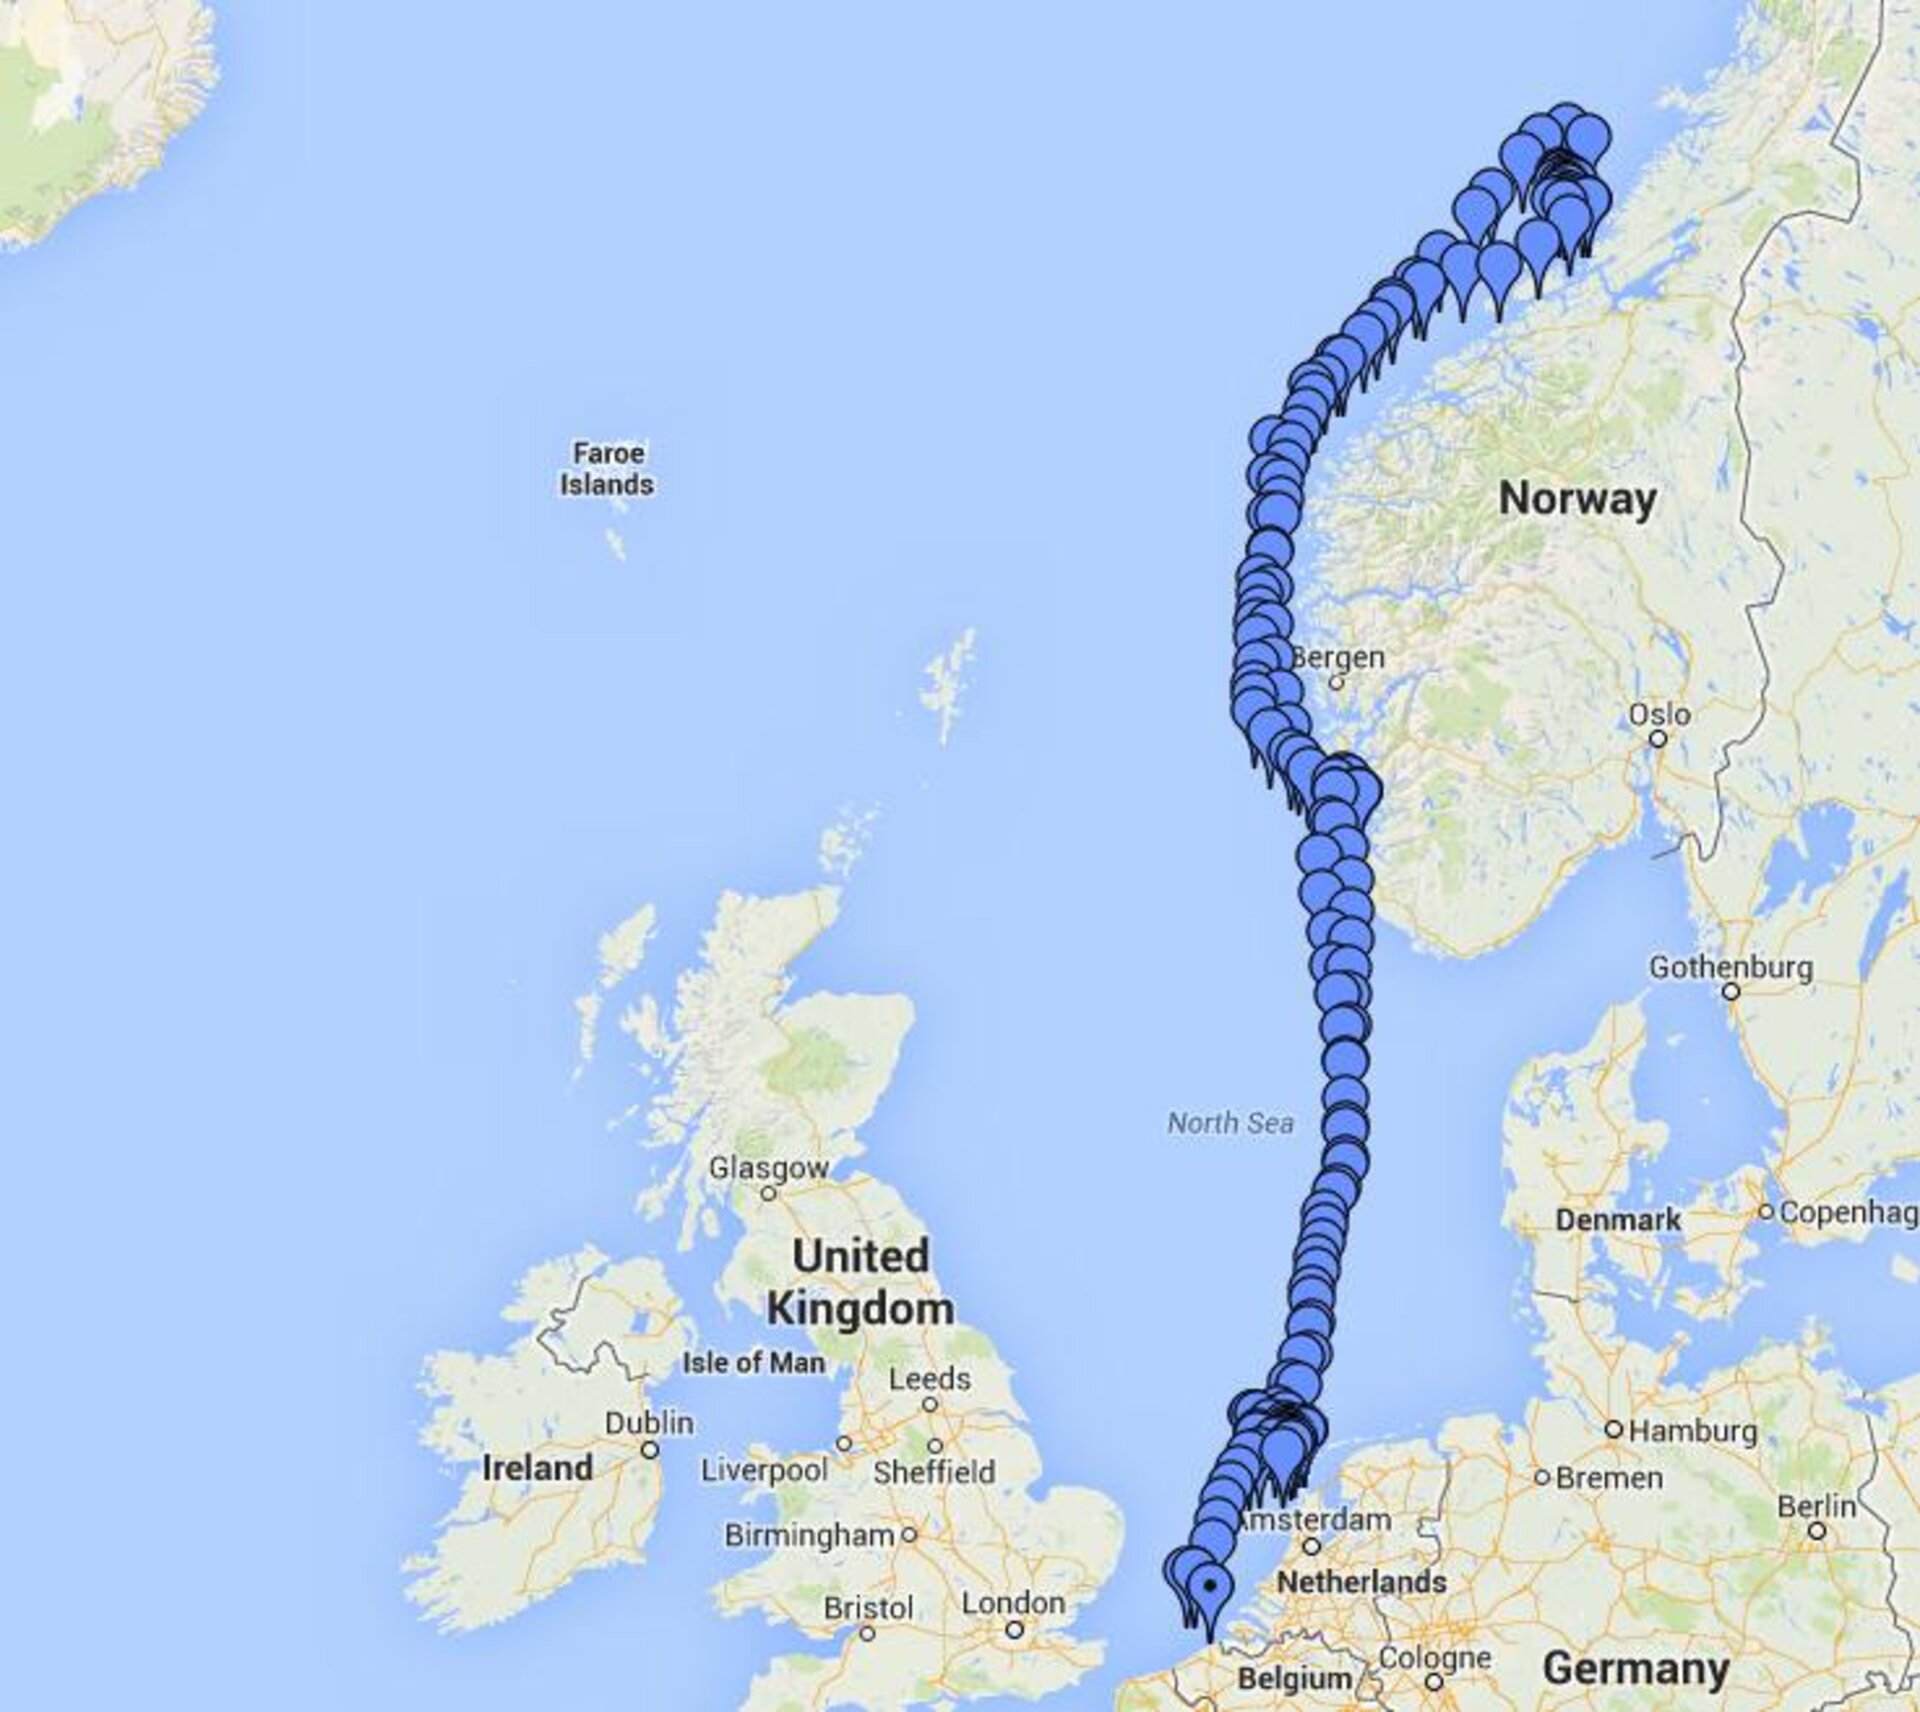 Galileo maritime trial route